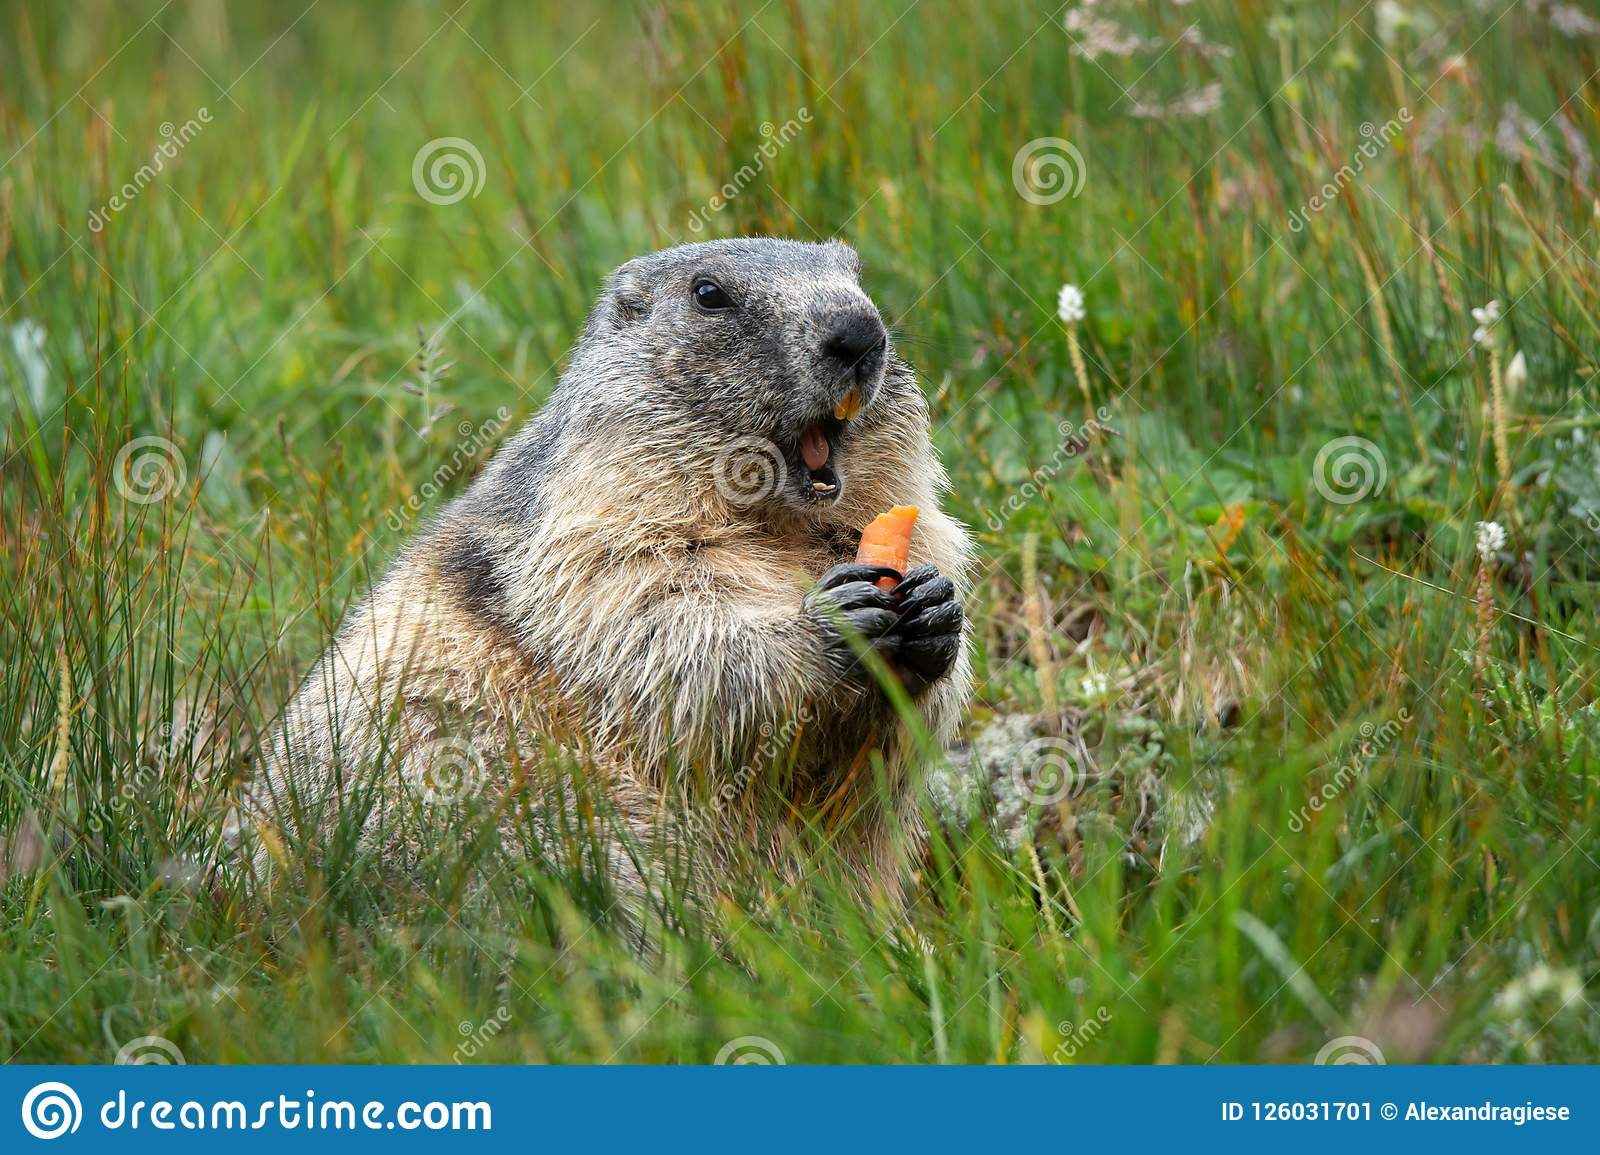 Alpine marmot with a carrot in the claws making a warning cry